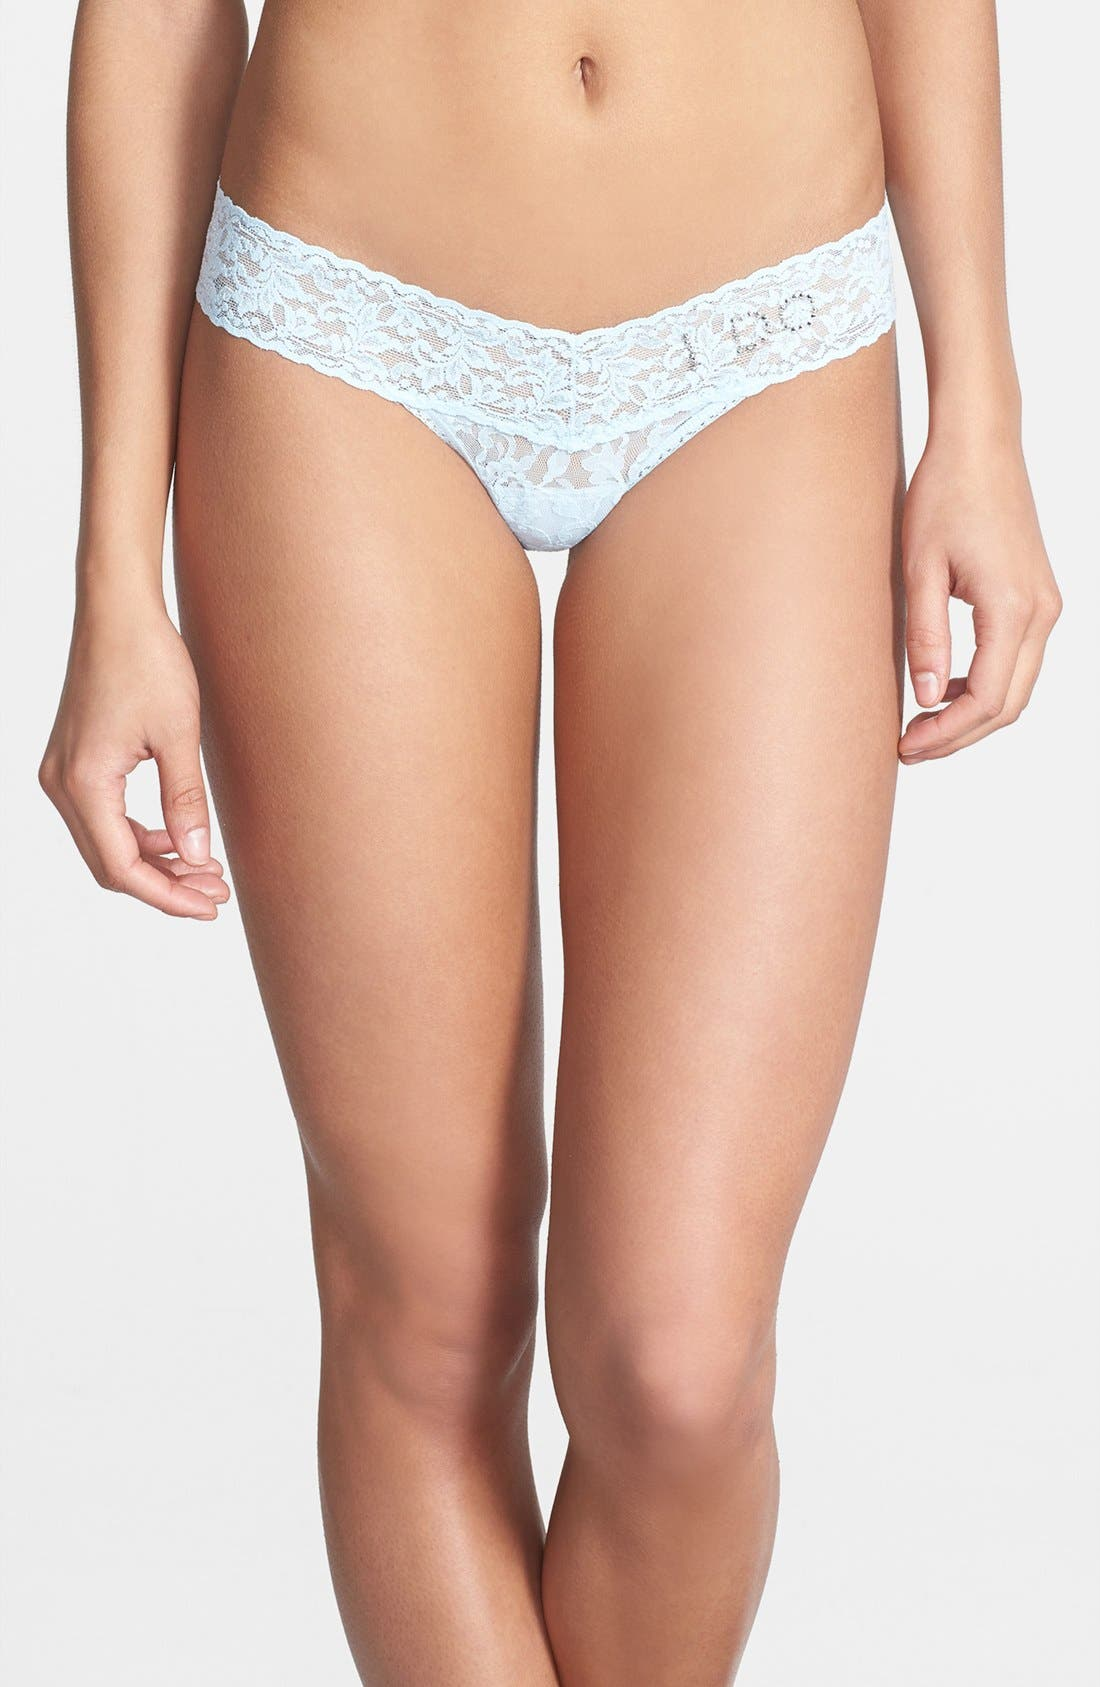 'I Do' Swarovski Crystal Low Rise Thong,                             Alternate thumbnail 4, color,                             POWDER BLUE